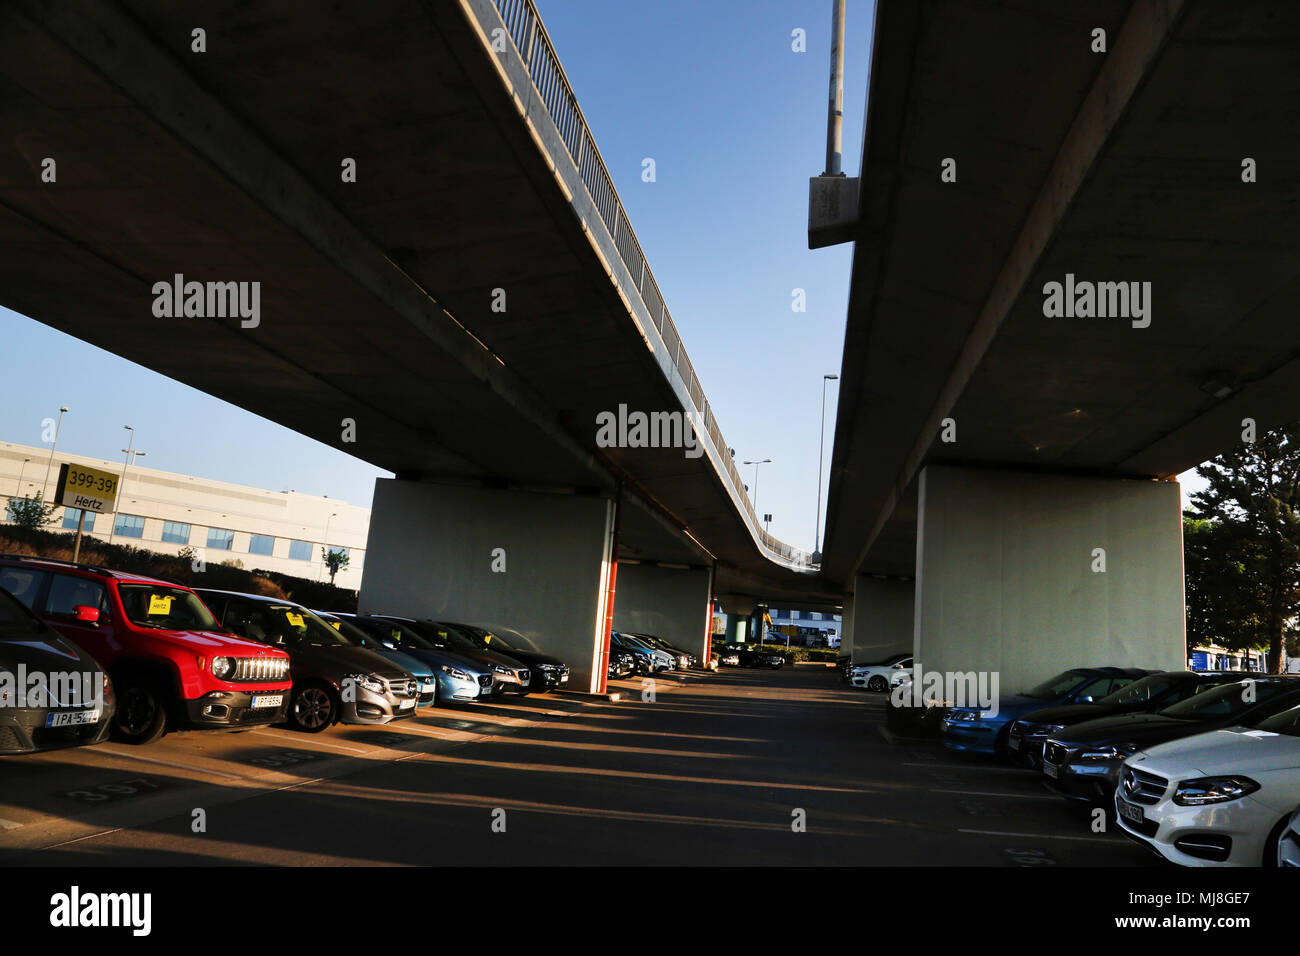 Hertz Car Rental under Flyover at Athens Airport Greece - Stock Image